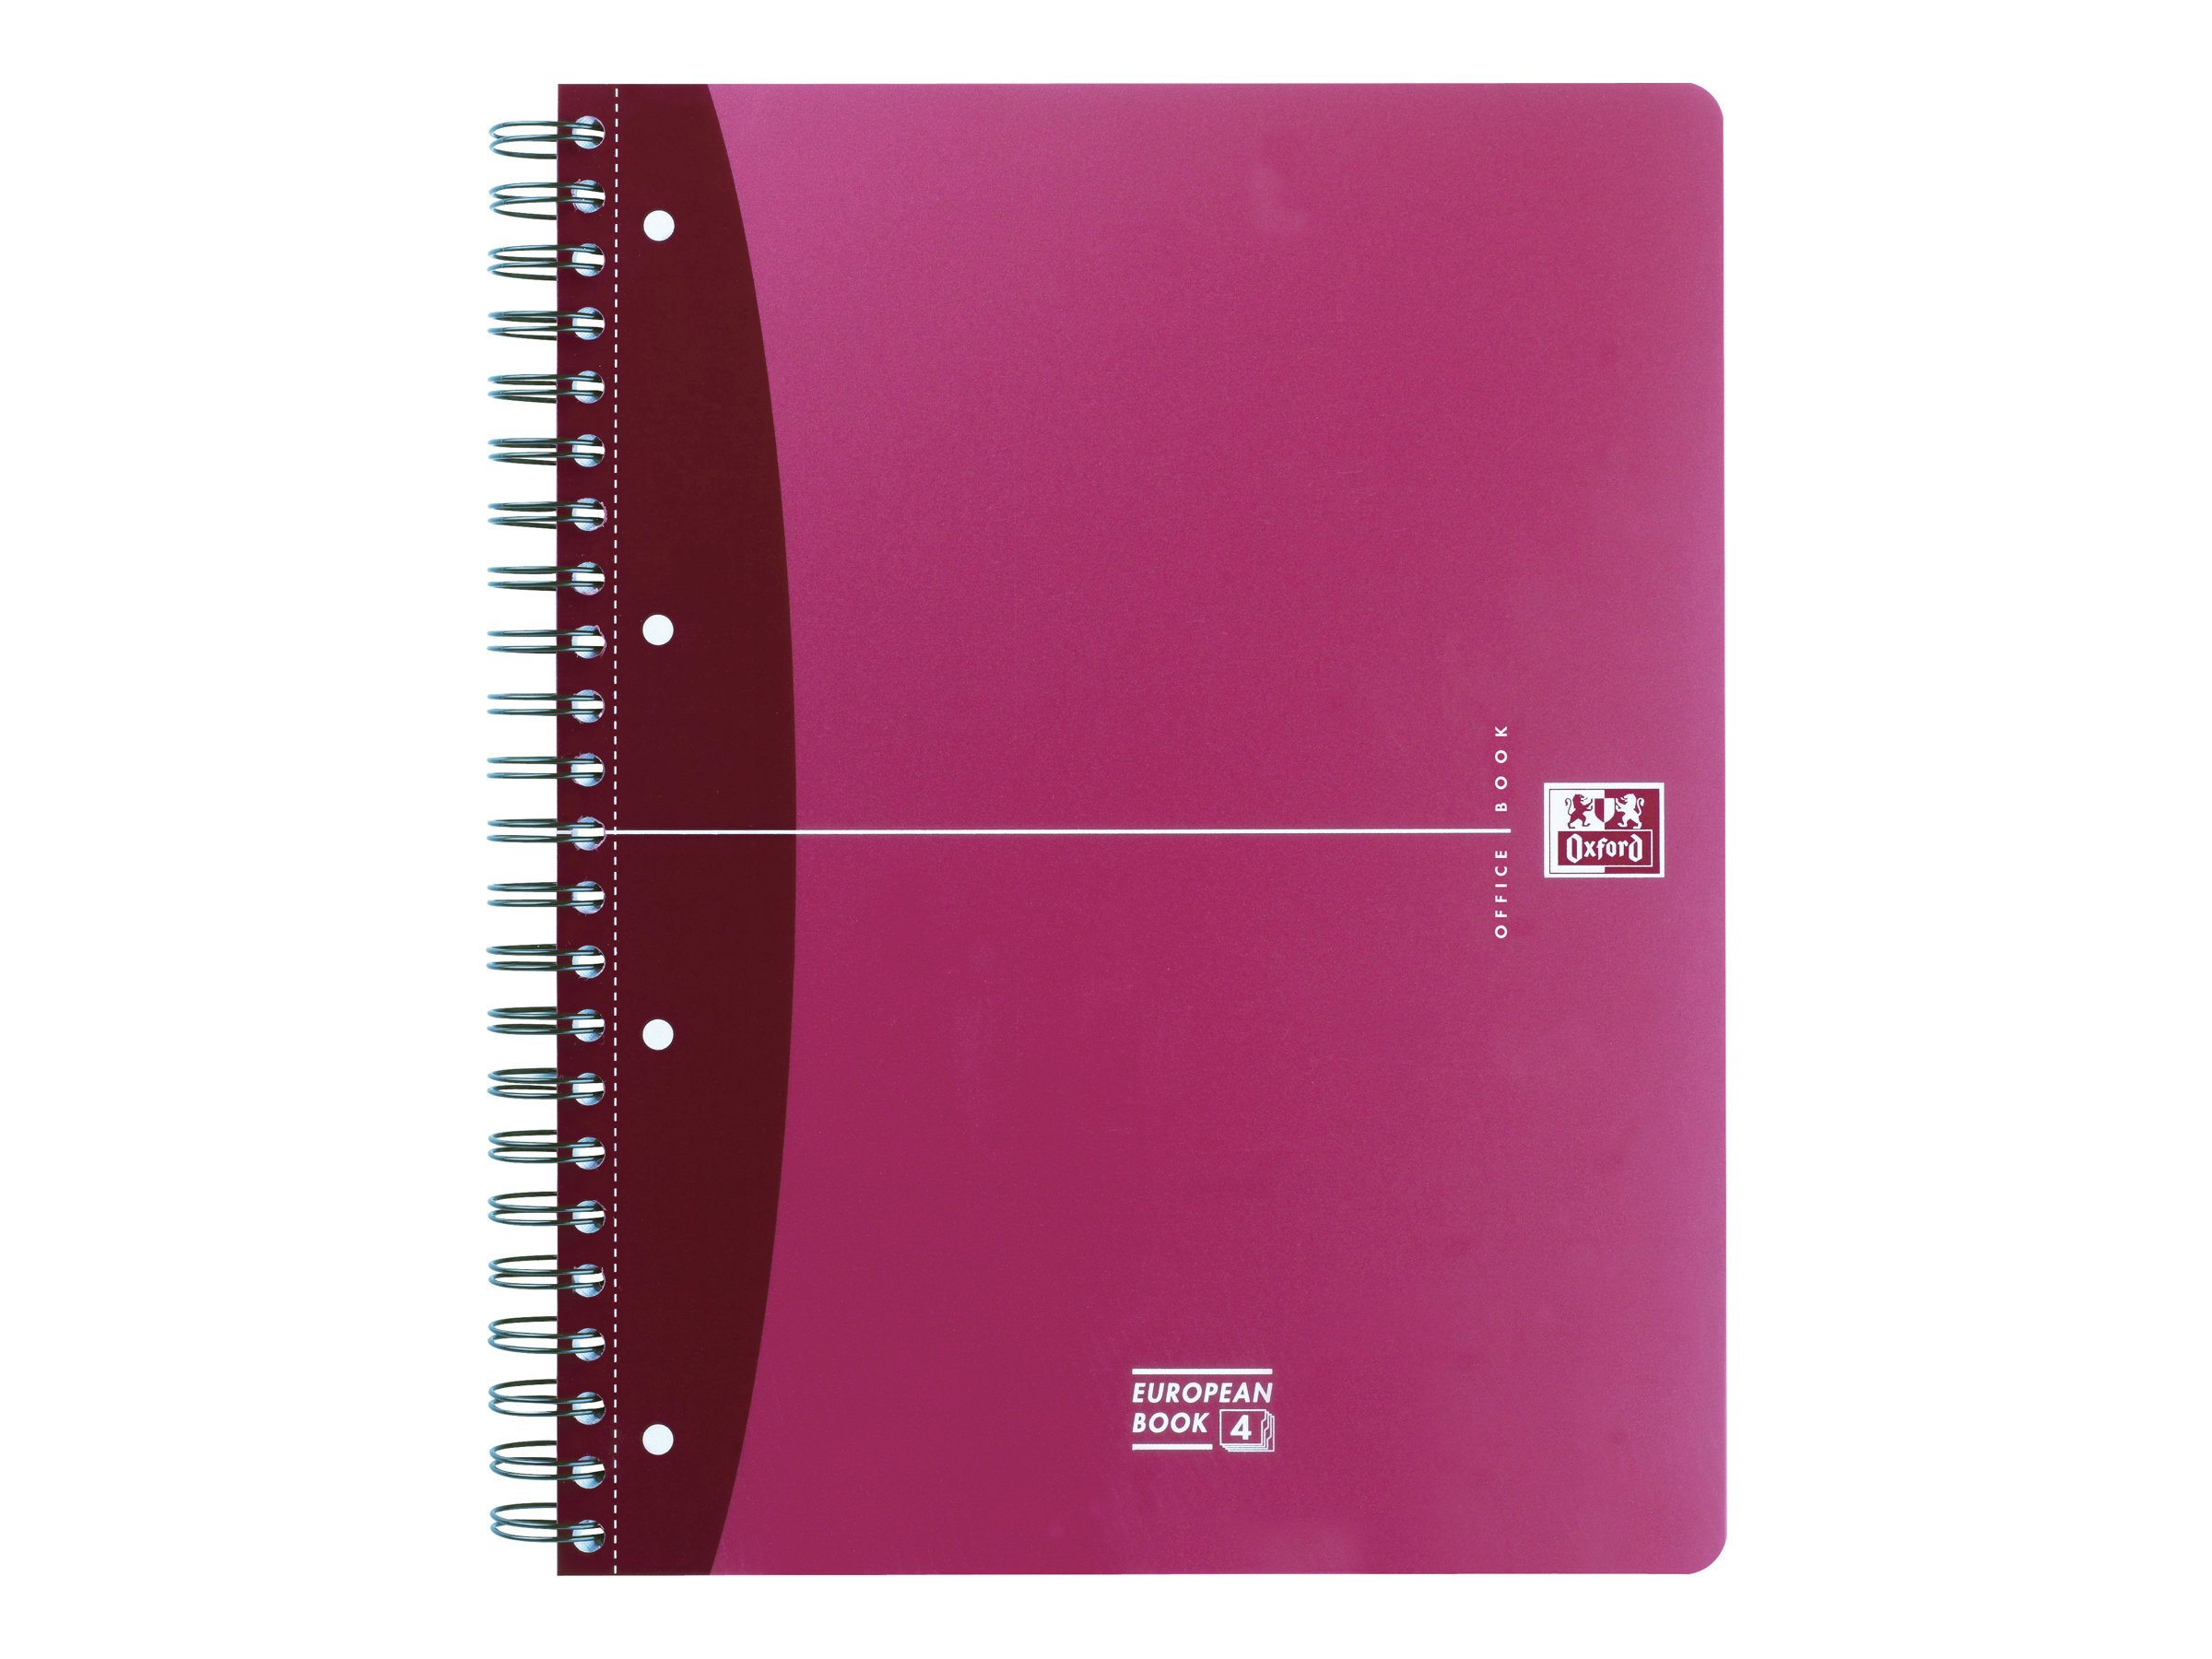 Oxford Office Europeanbook A4+ - Cahier - 240 pages - Seyès - Grands carreaux